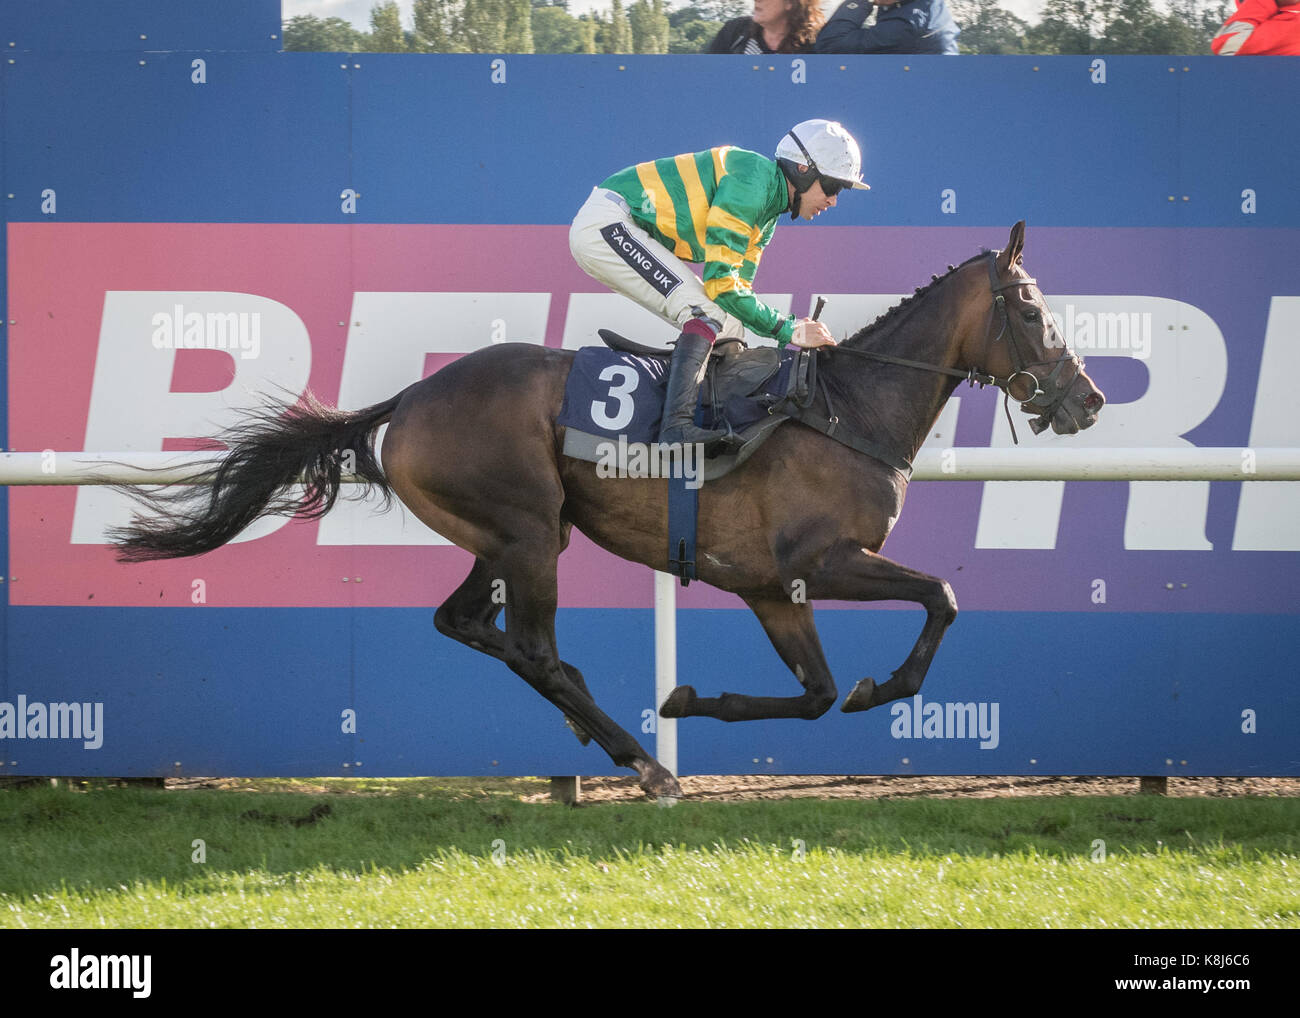 Racehorse crosses the winning line at Uttoxeter Racecourse - Stock Image